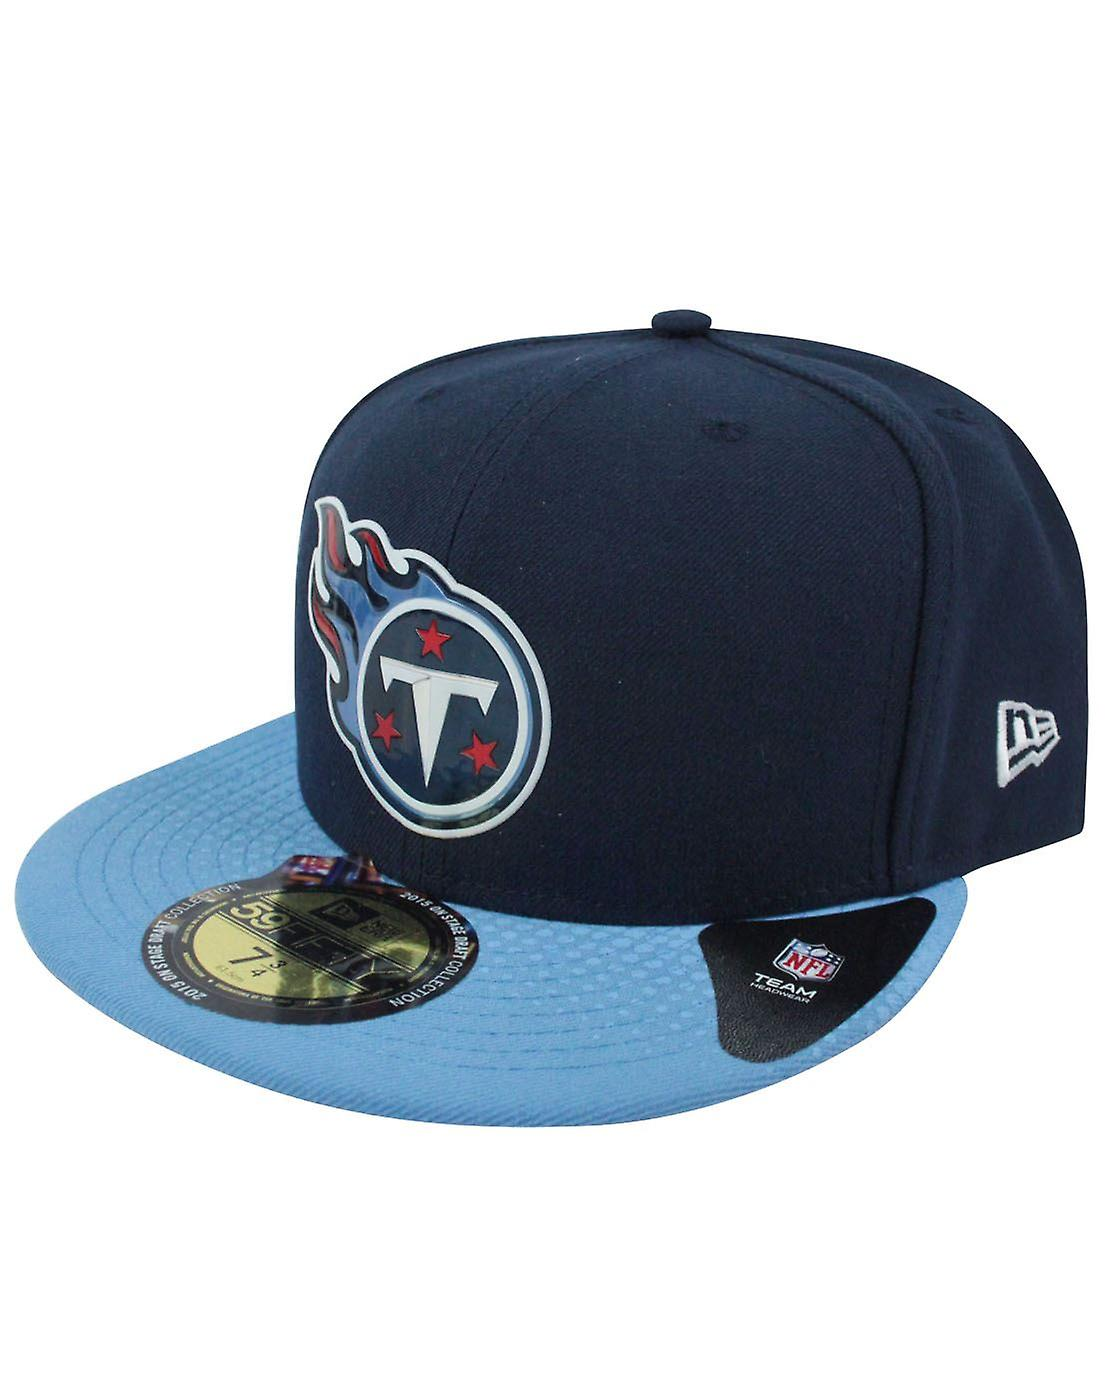 separation shoes 20a5a 09a2b New Era 59Fifty NFL Tennessee Titans Draft Cap Blue